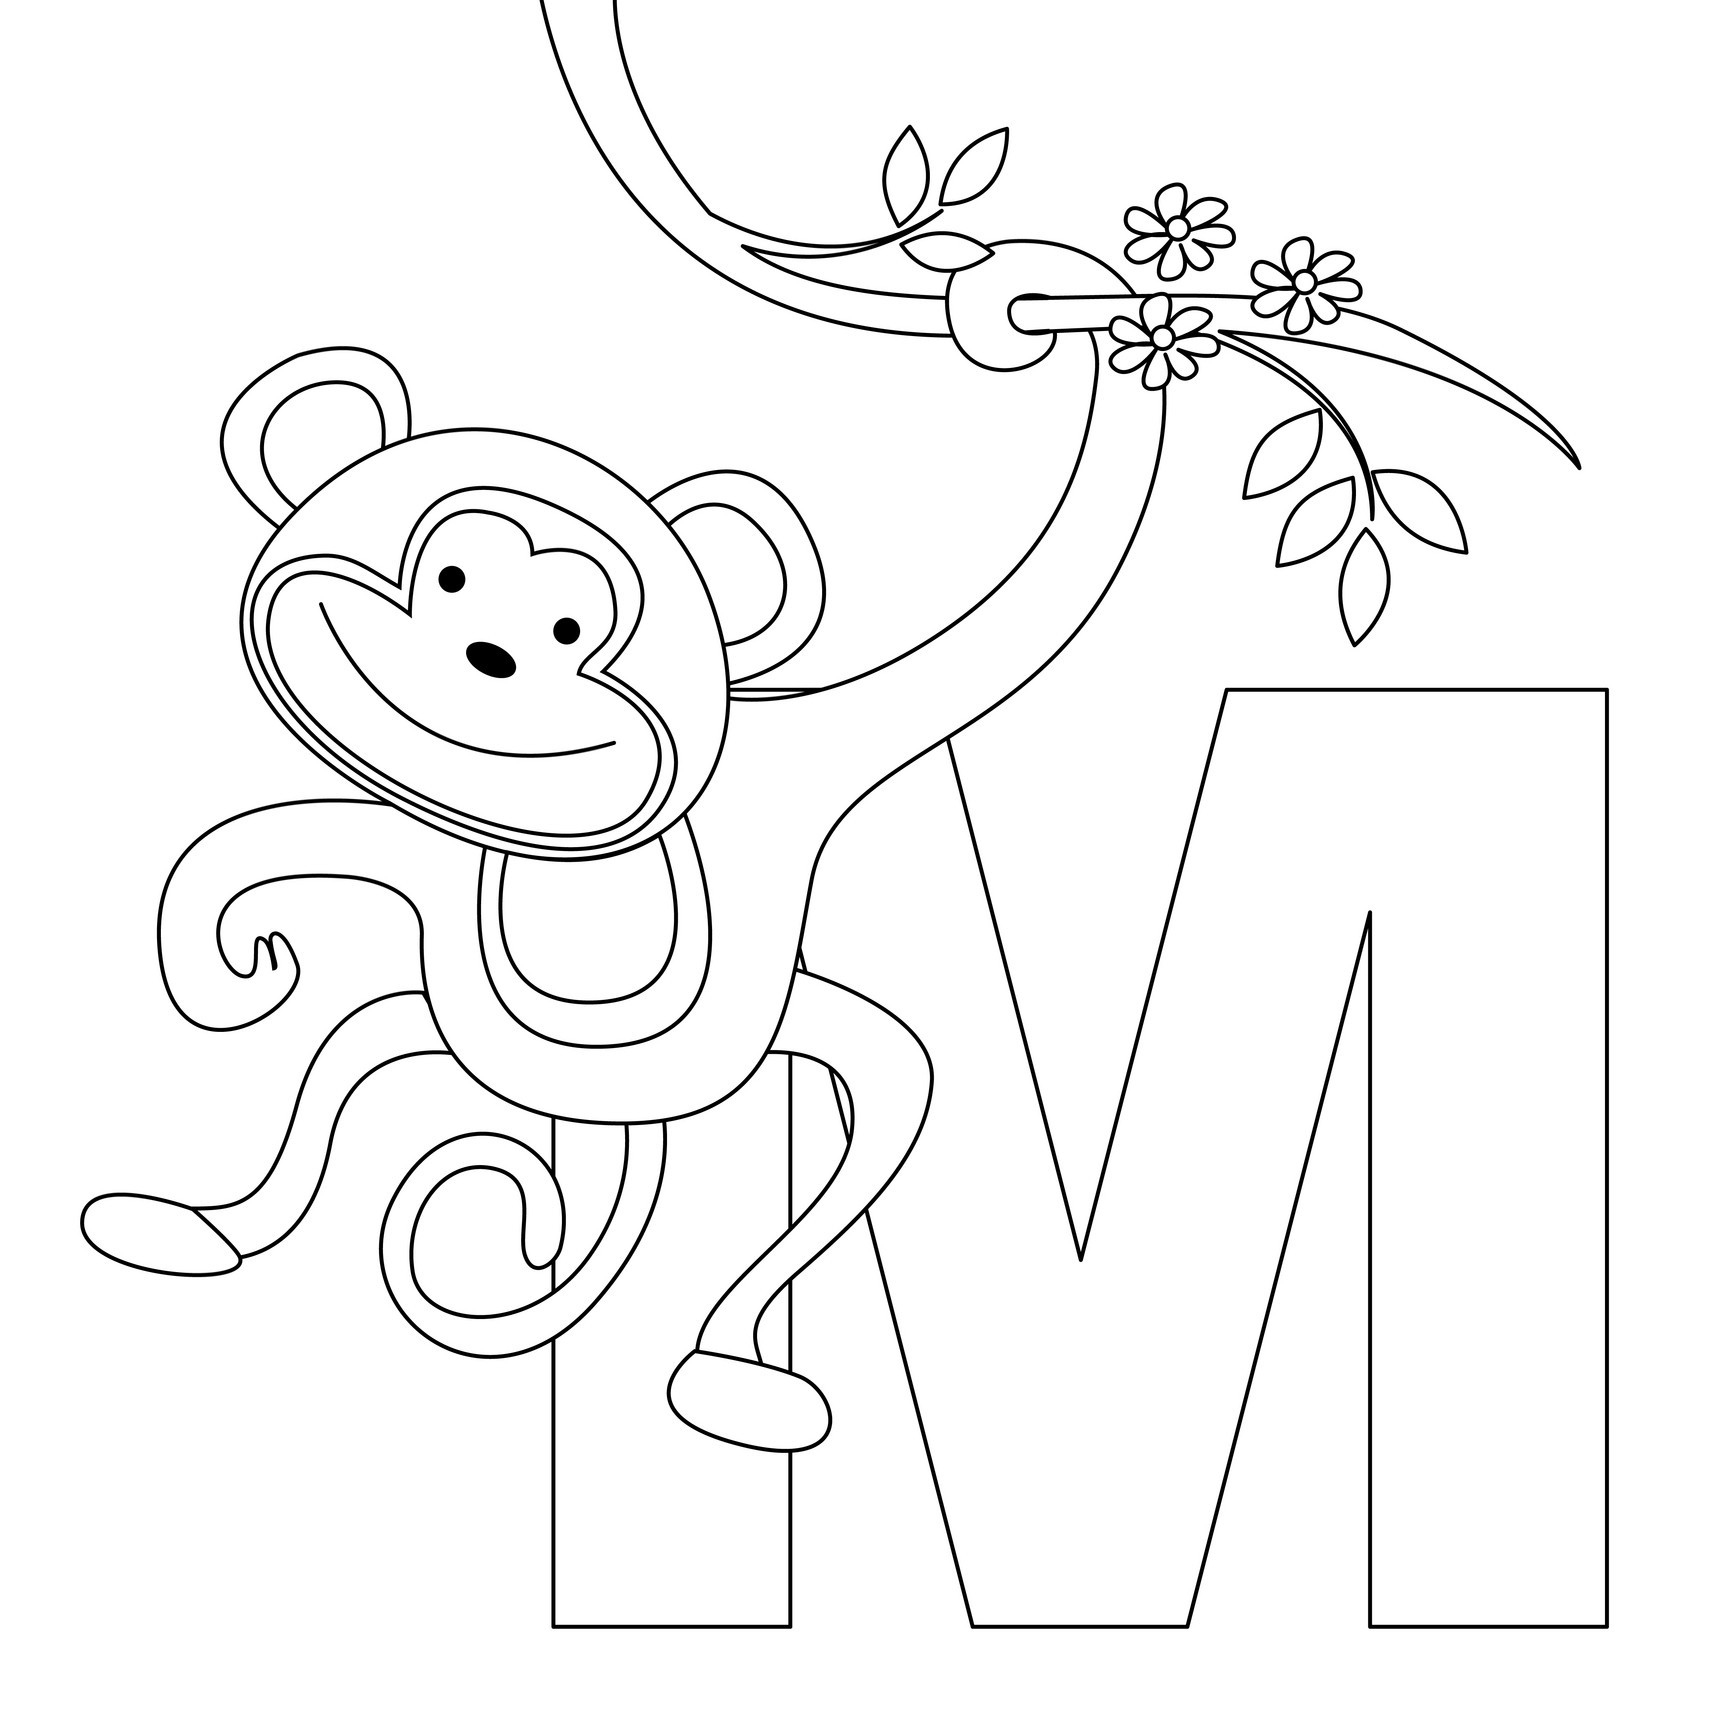 colouring pictures of alphabets free printable alphabet coloring pages for kids best alphabets of pictures colouring